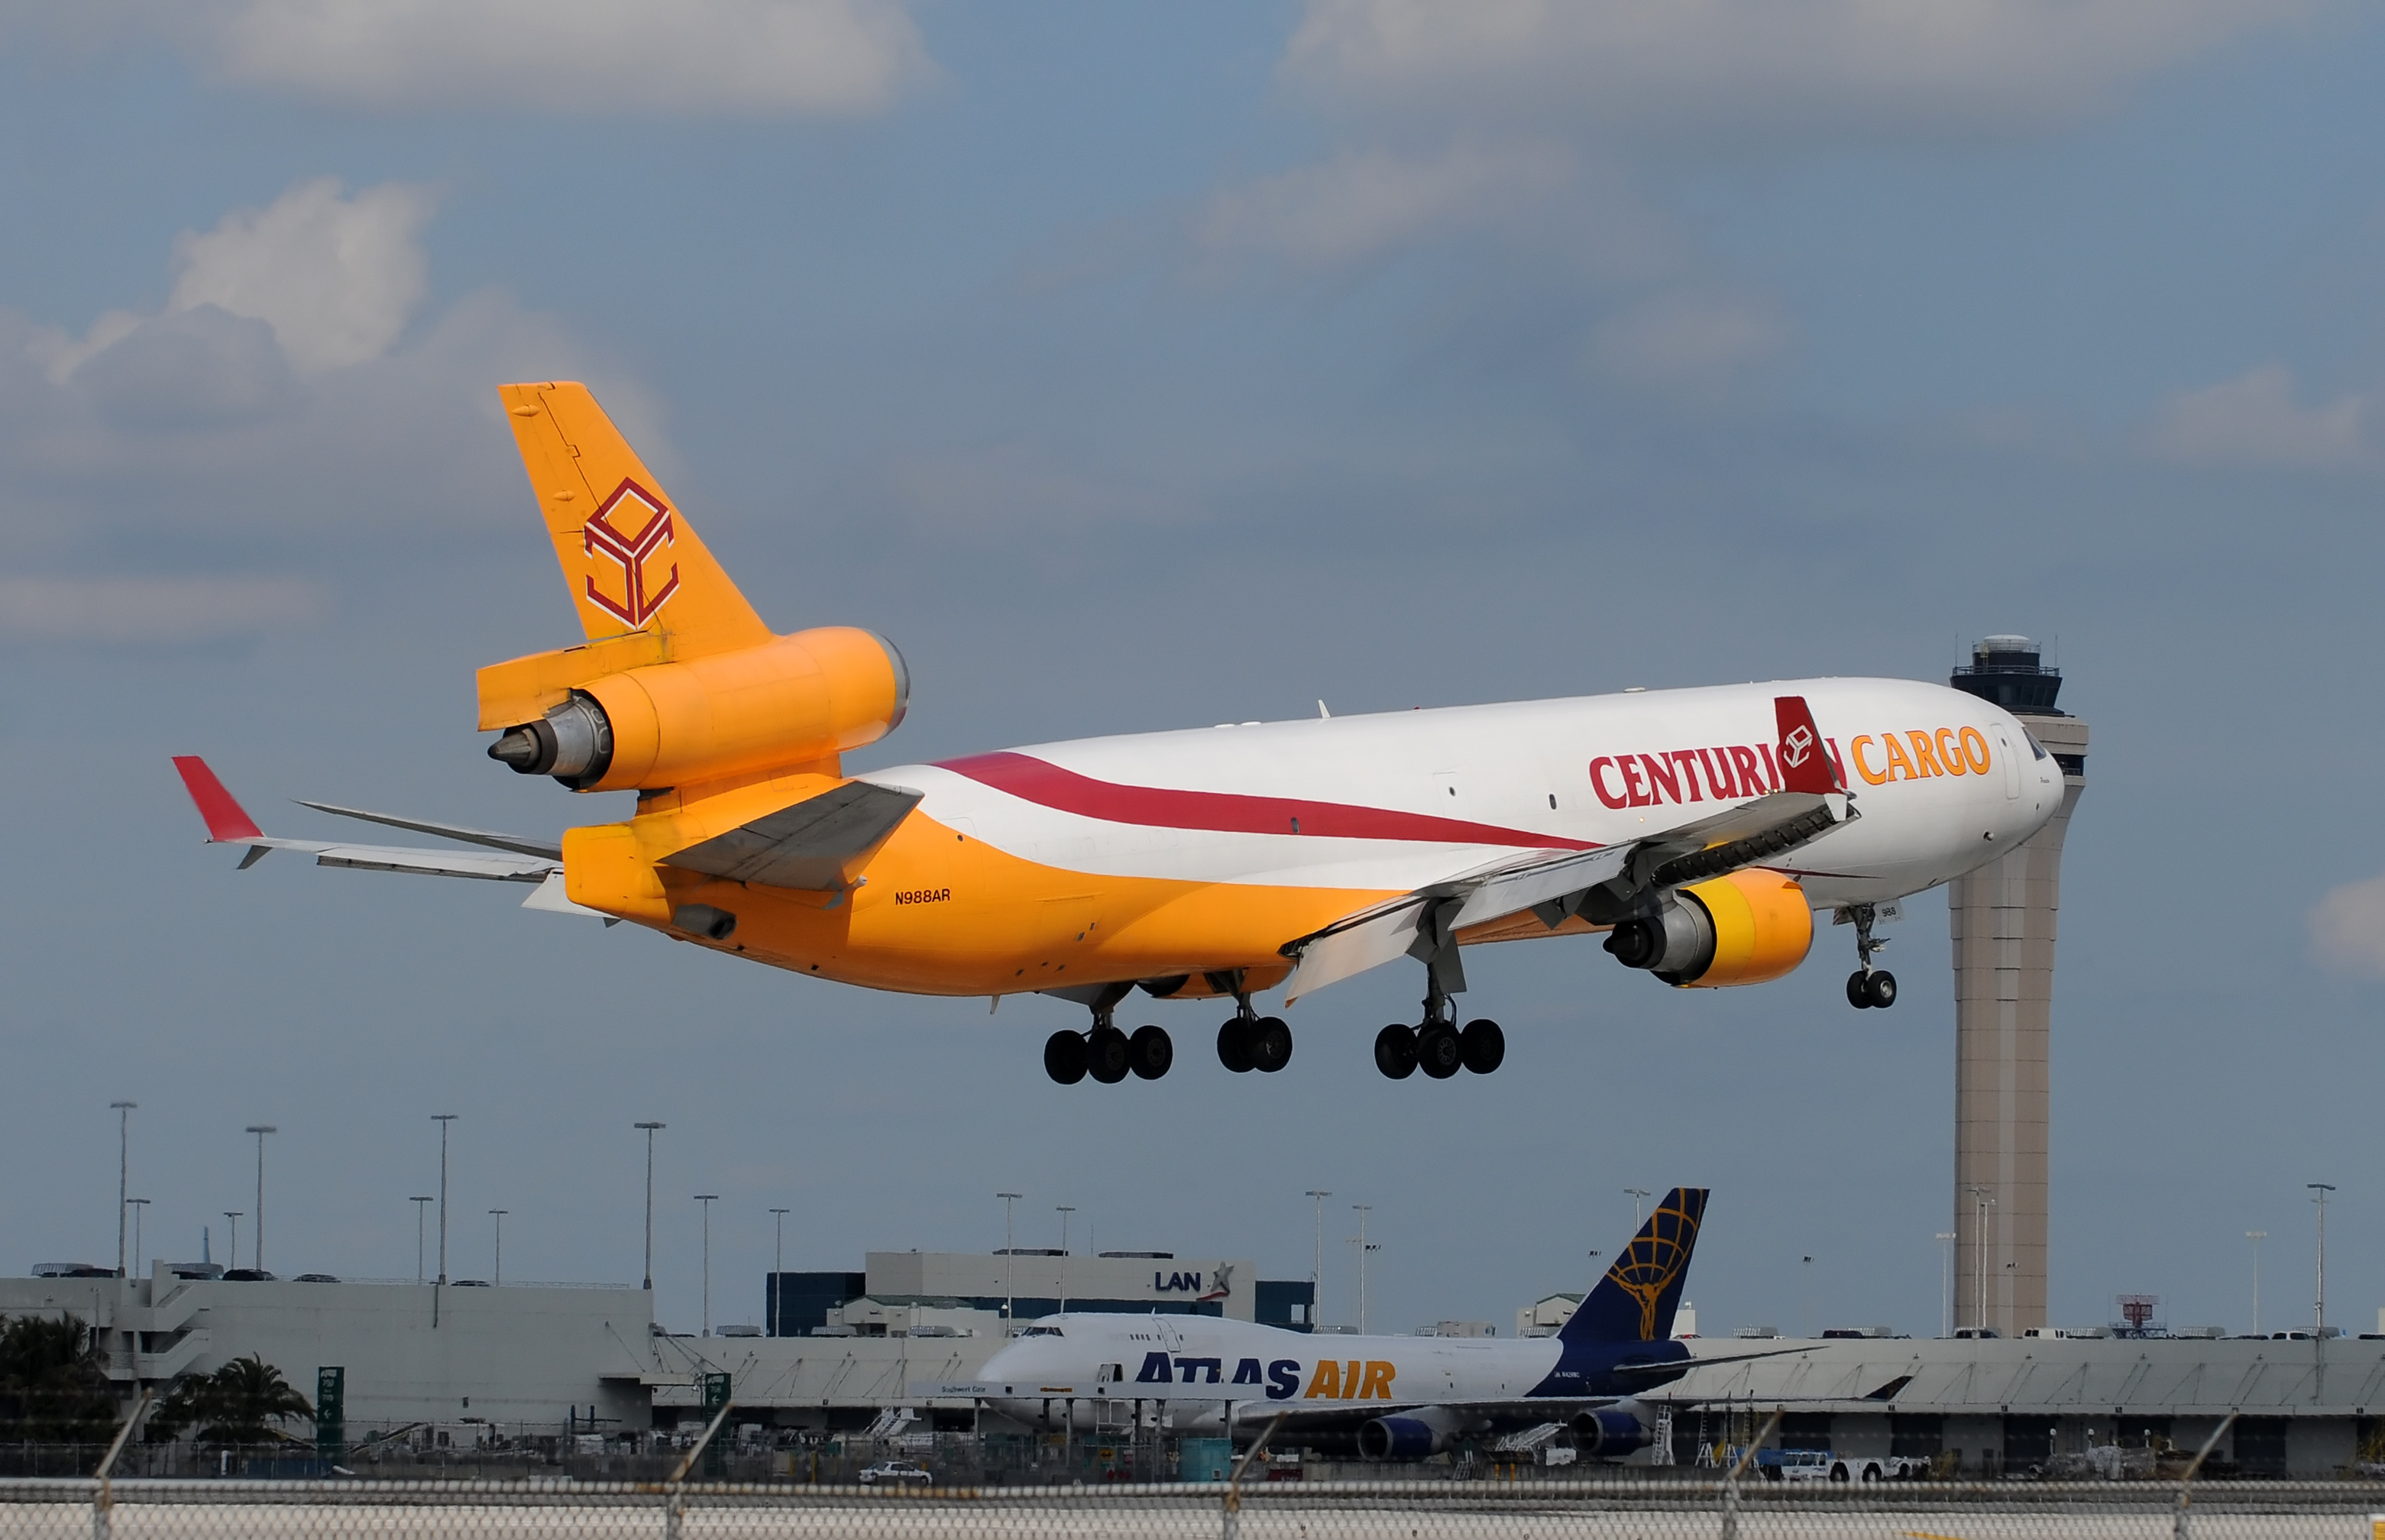 All-cargo airlines feel the heat as air cargo market weakens